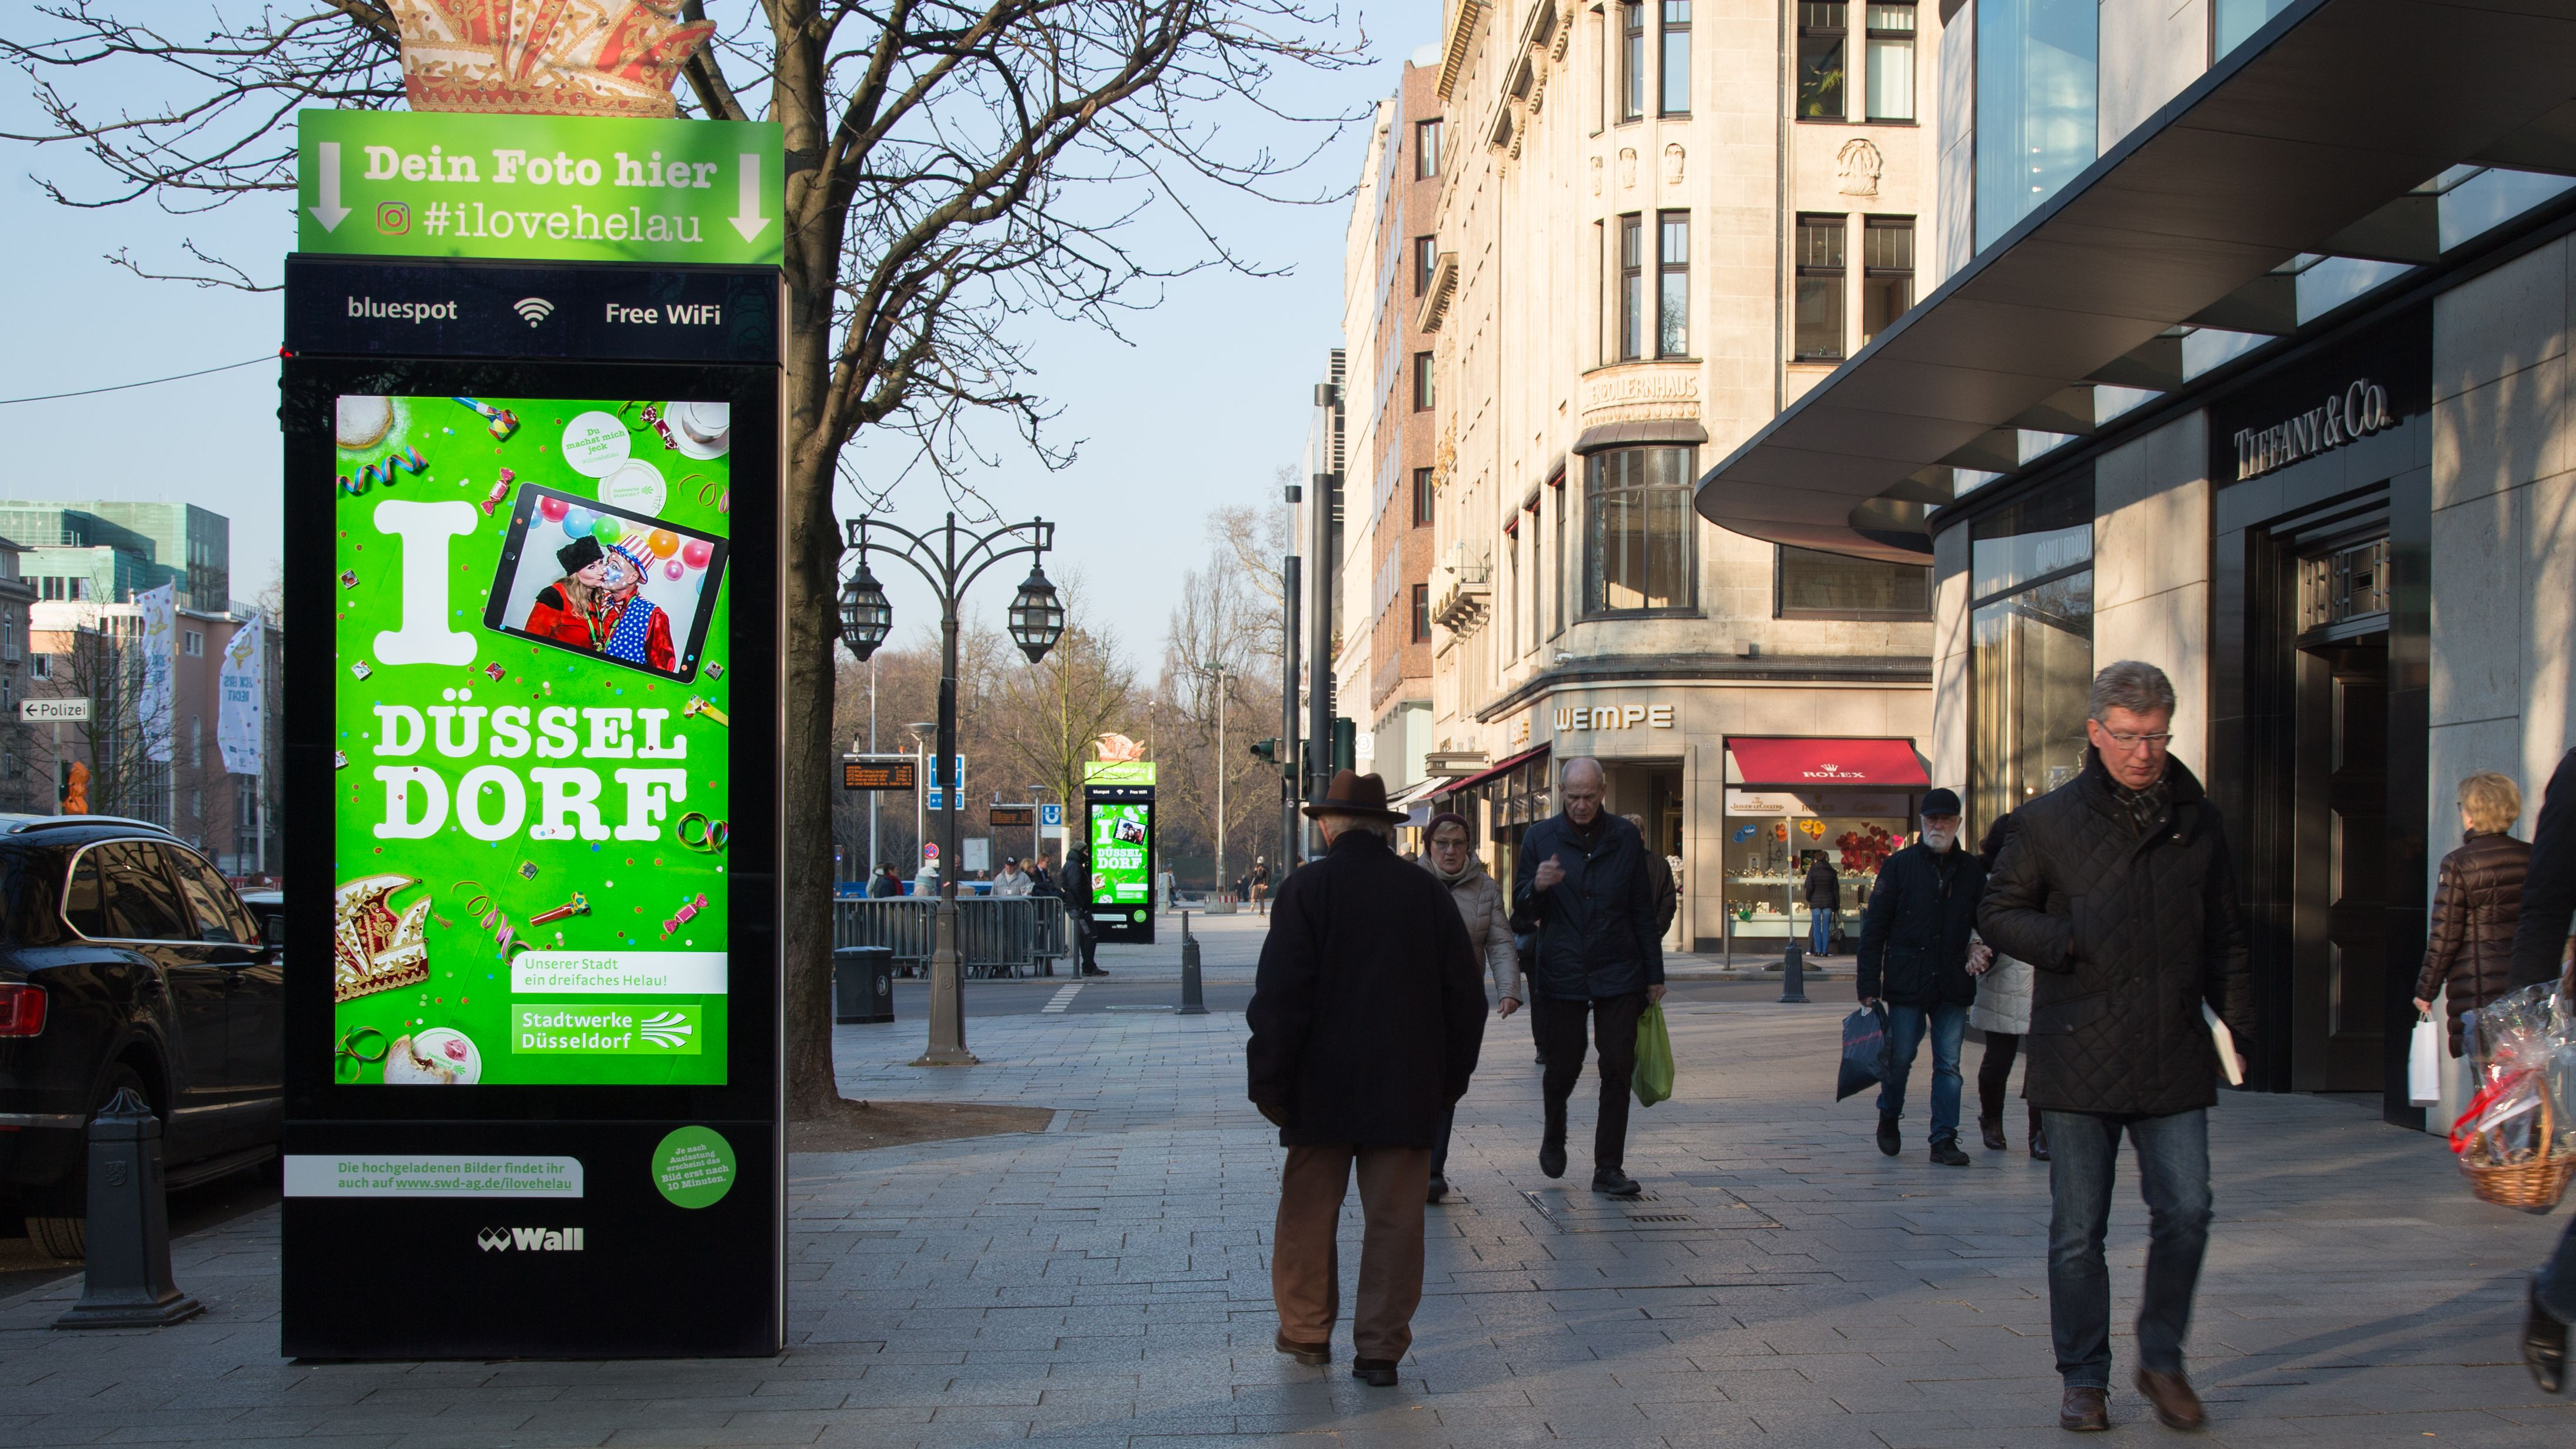 WallDecaux will Out-of-Home individueller austeuerbar machen